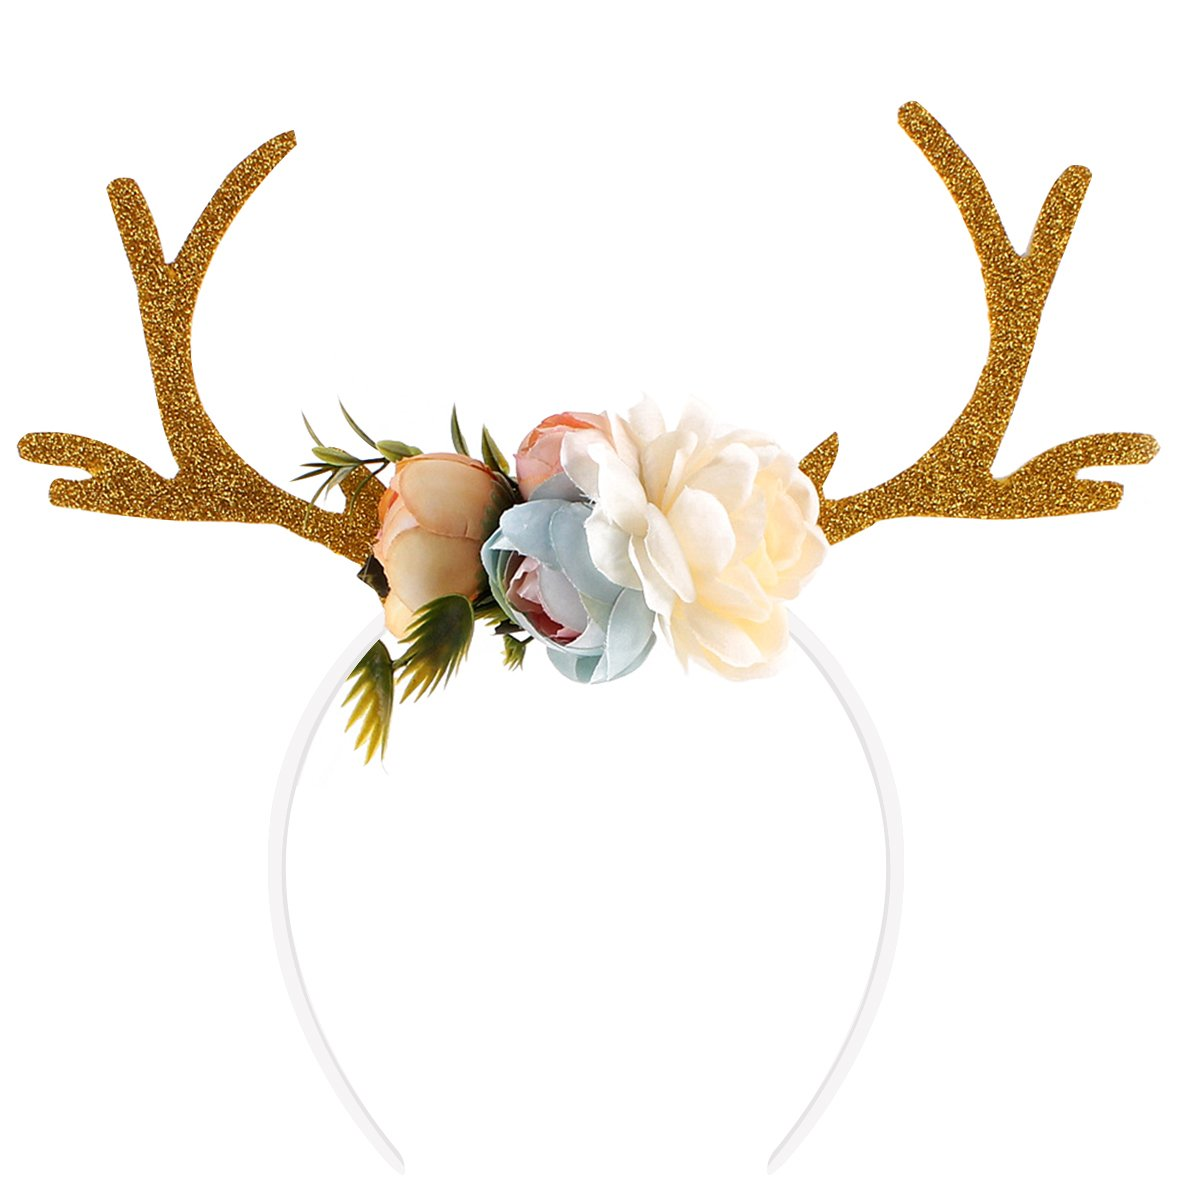 Amazon.com  OULII Funny Deer Antler Headband with Flowers Blossom Novelty  Hair Band Christmas Fancy Dress Costumes Accessory (Khaki)  Health    Personal Care 978e5165636